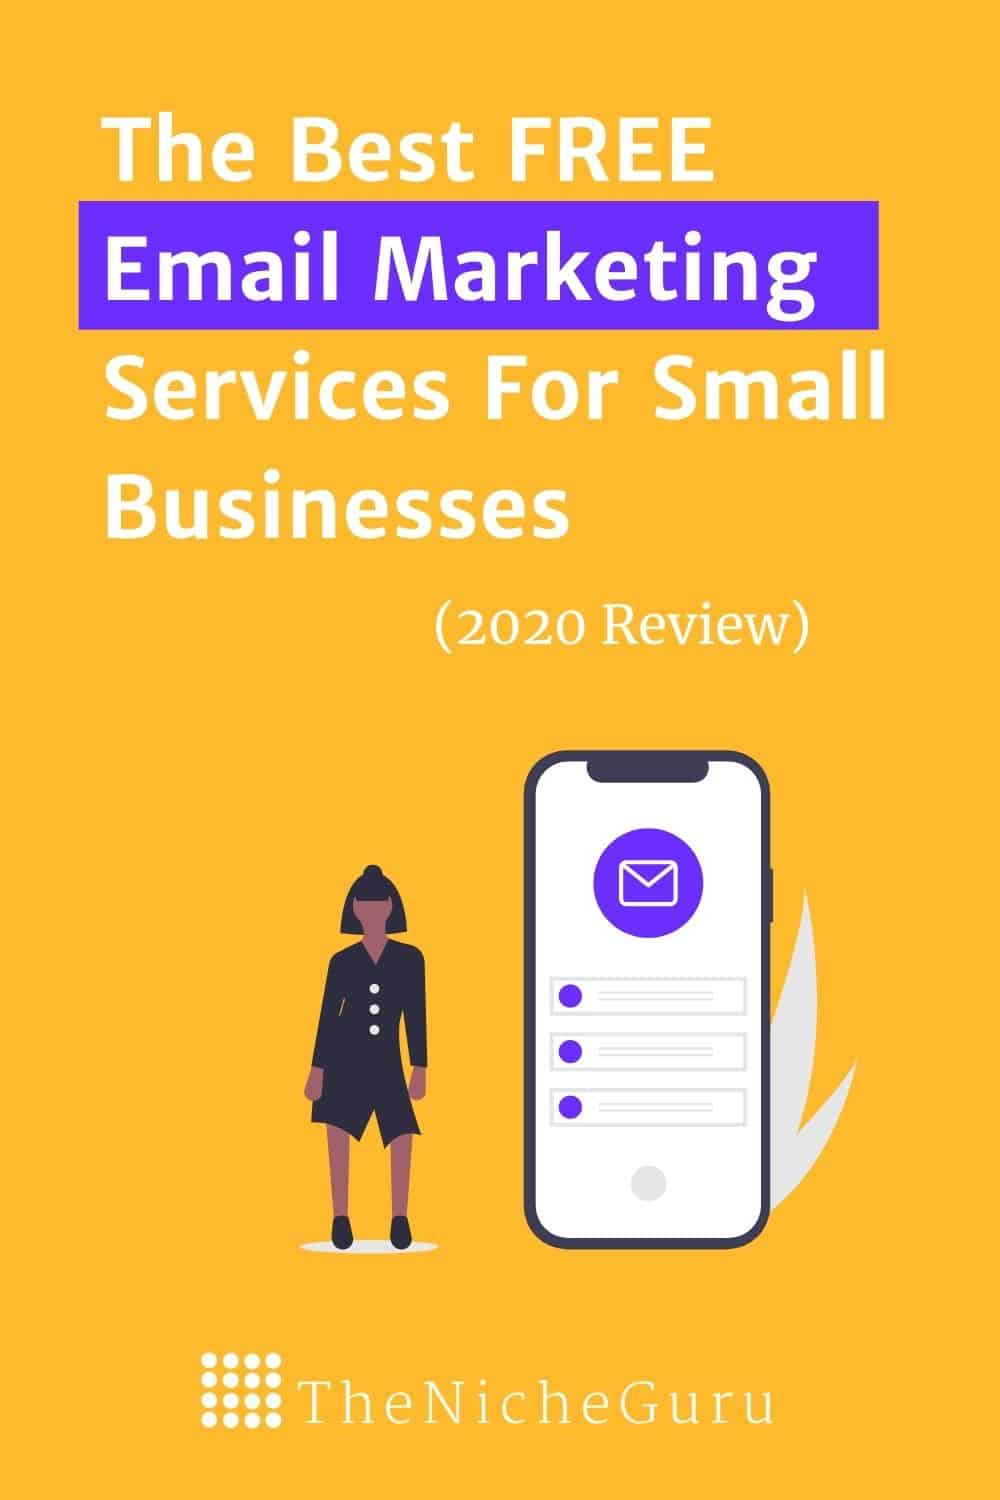 Use these free email marketing software tools, perfect to grow your business. Learn which service adjusts best to your business with a detailed list of the key features. Try these email marketing services for FREE now. #Email #EmailMarketing #Blogging #EmailTools